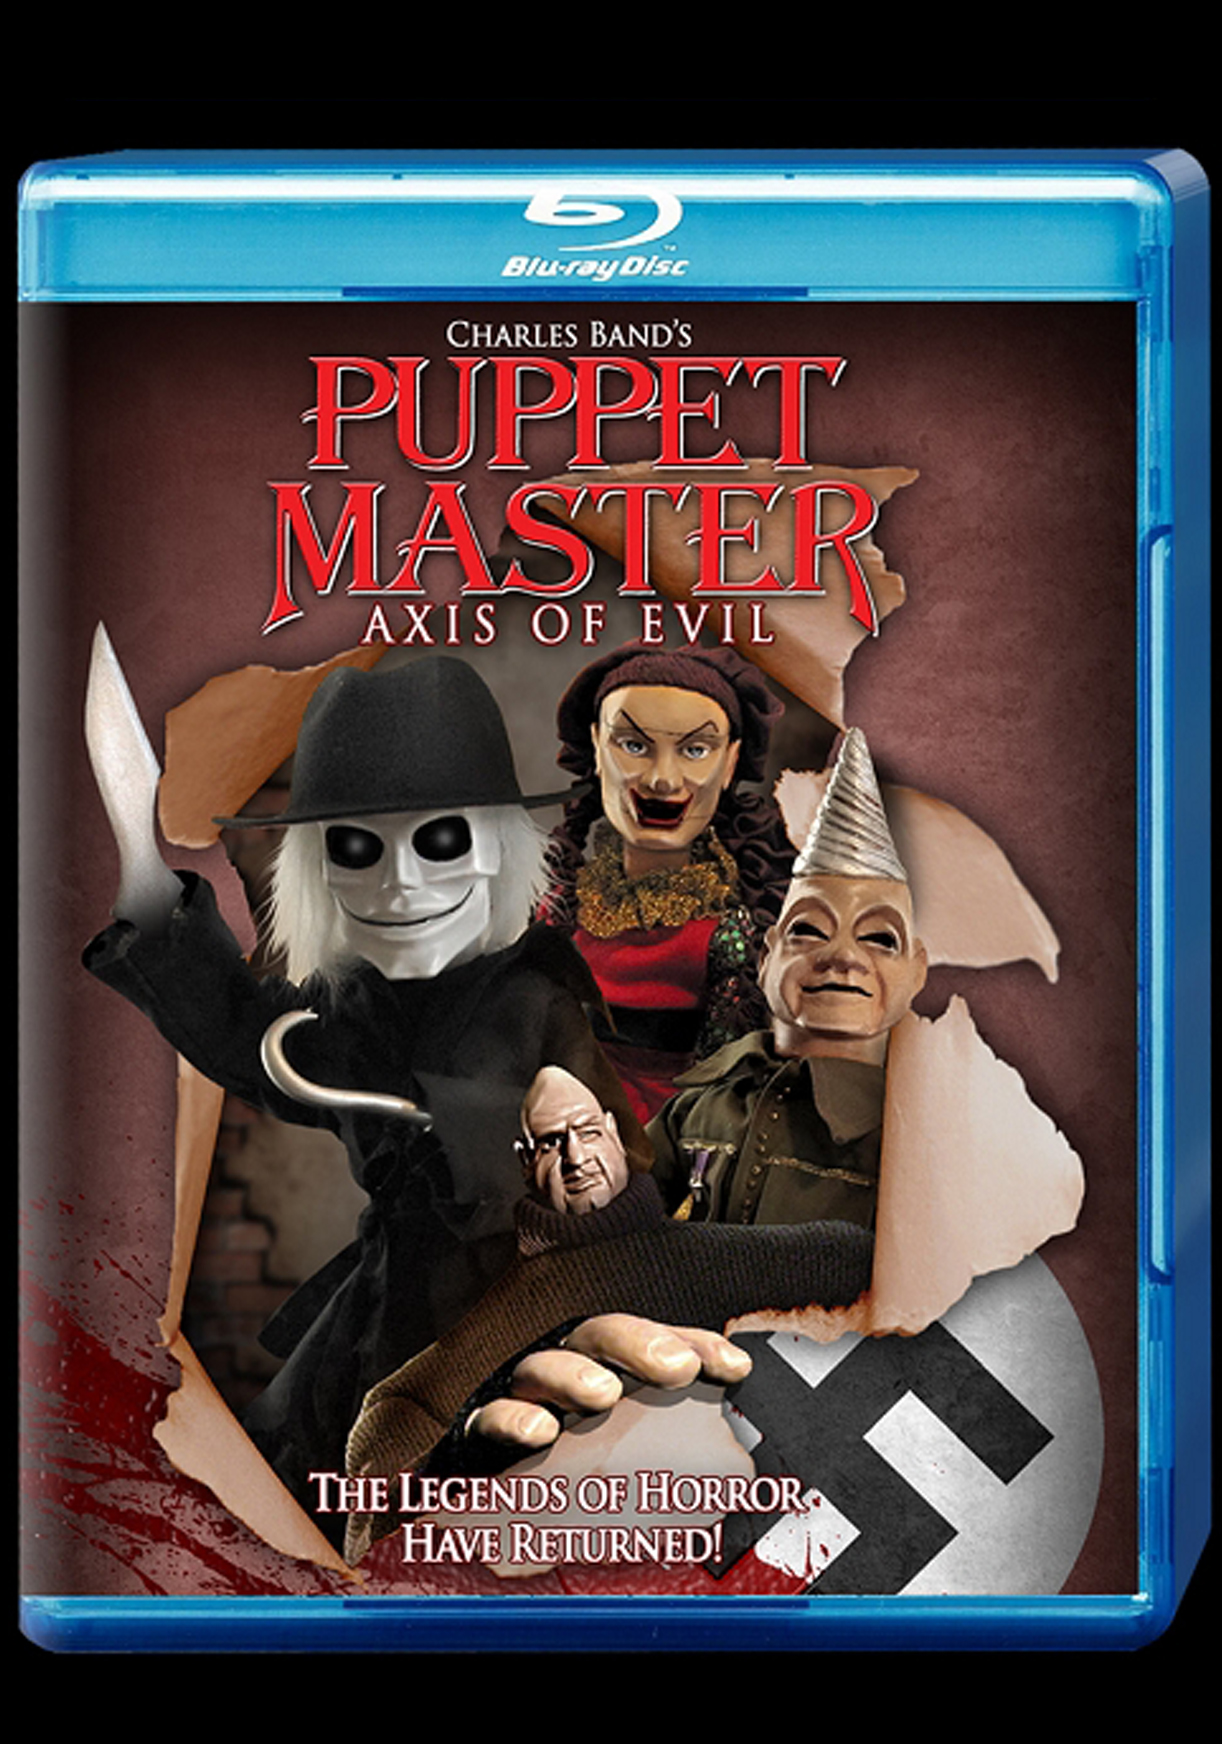 pmaxisofevil_bluray3d.jpg